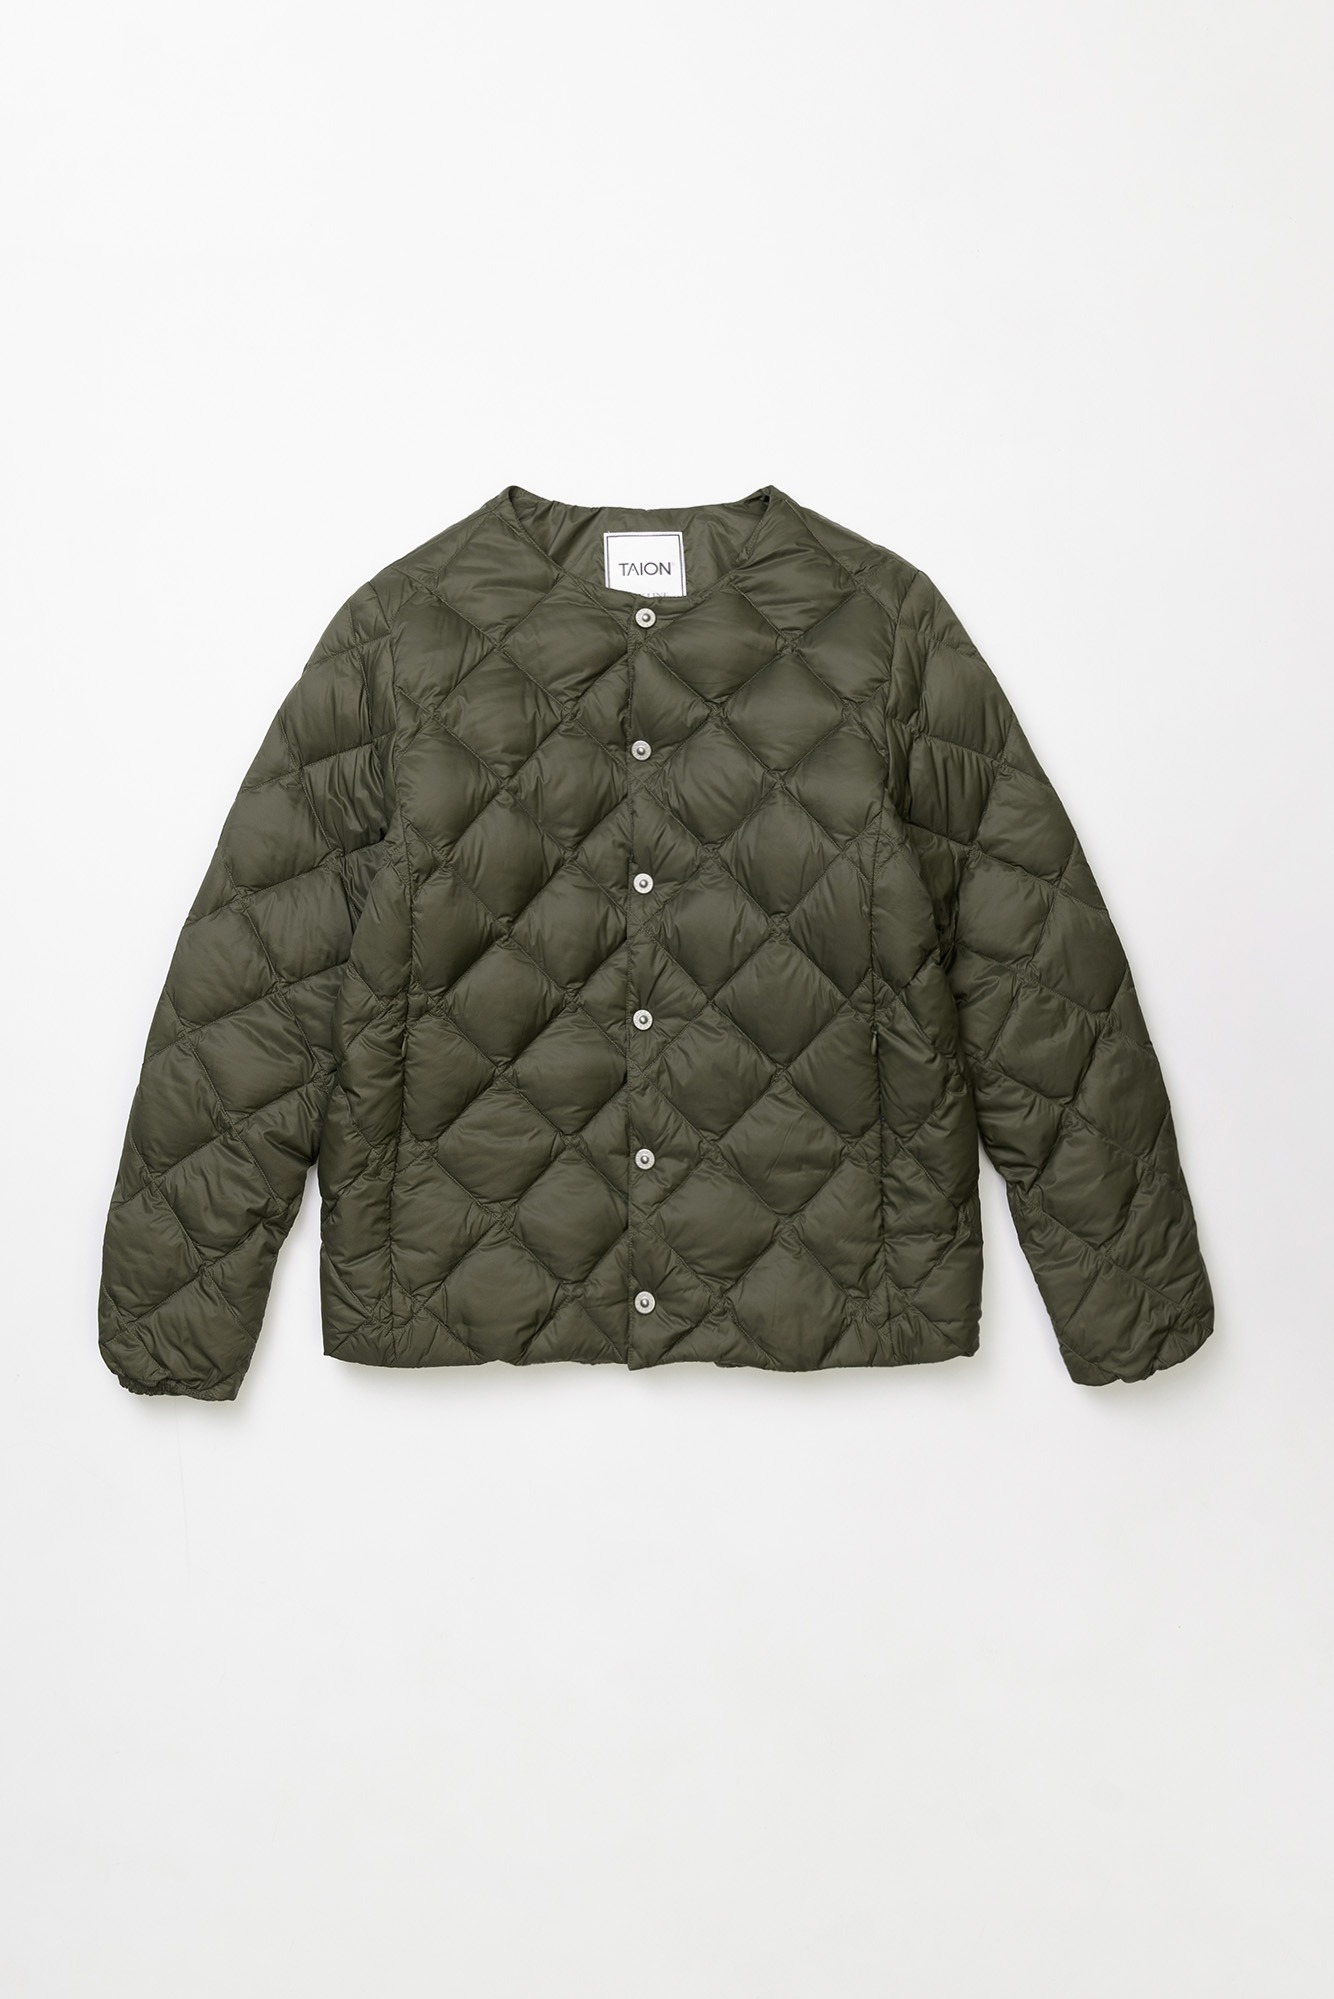 "TAION Crew Neck Down Jacket ""Olive"""